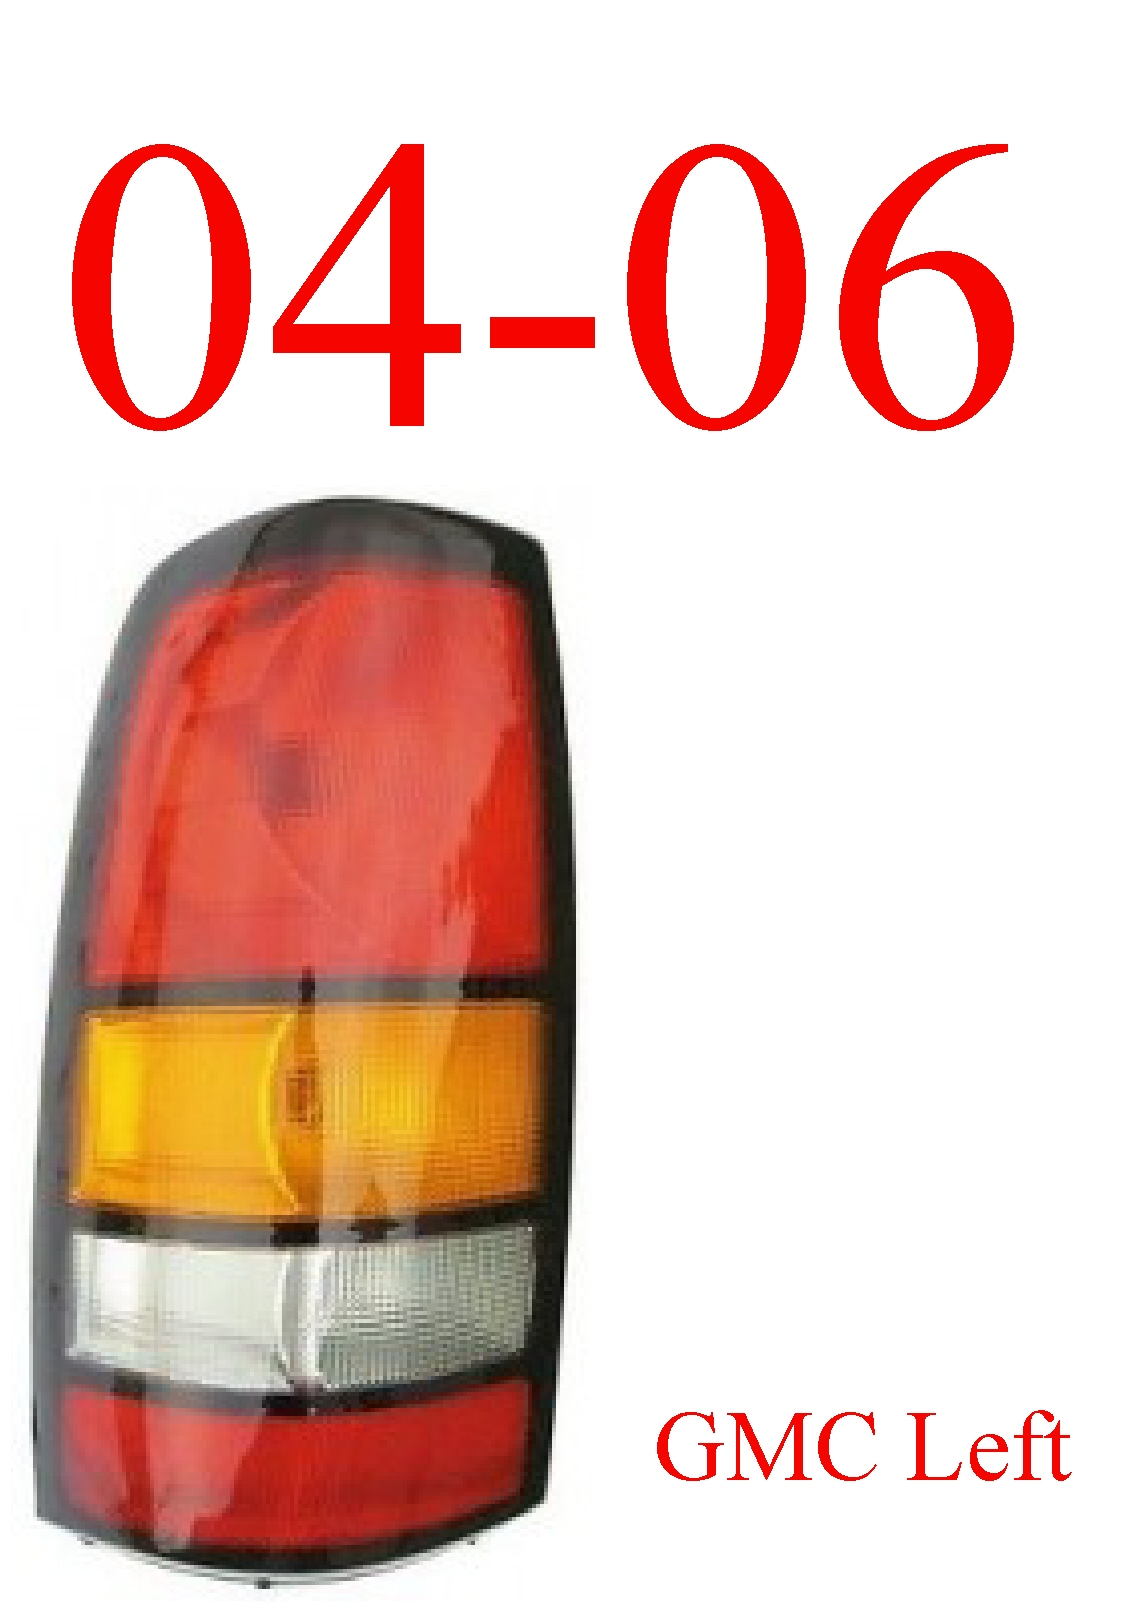 04-06 GMC Truck Left Tail Light Assembly